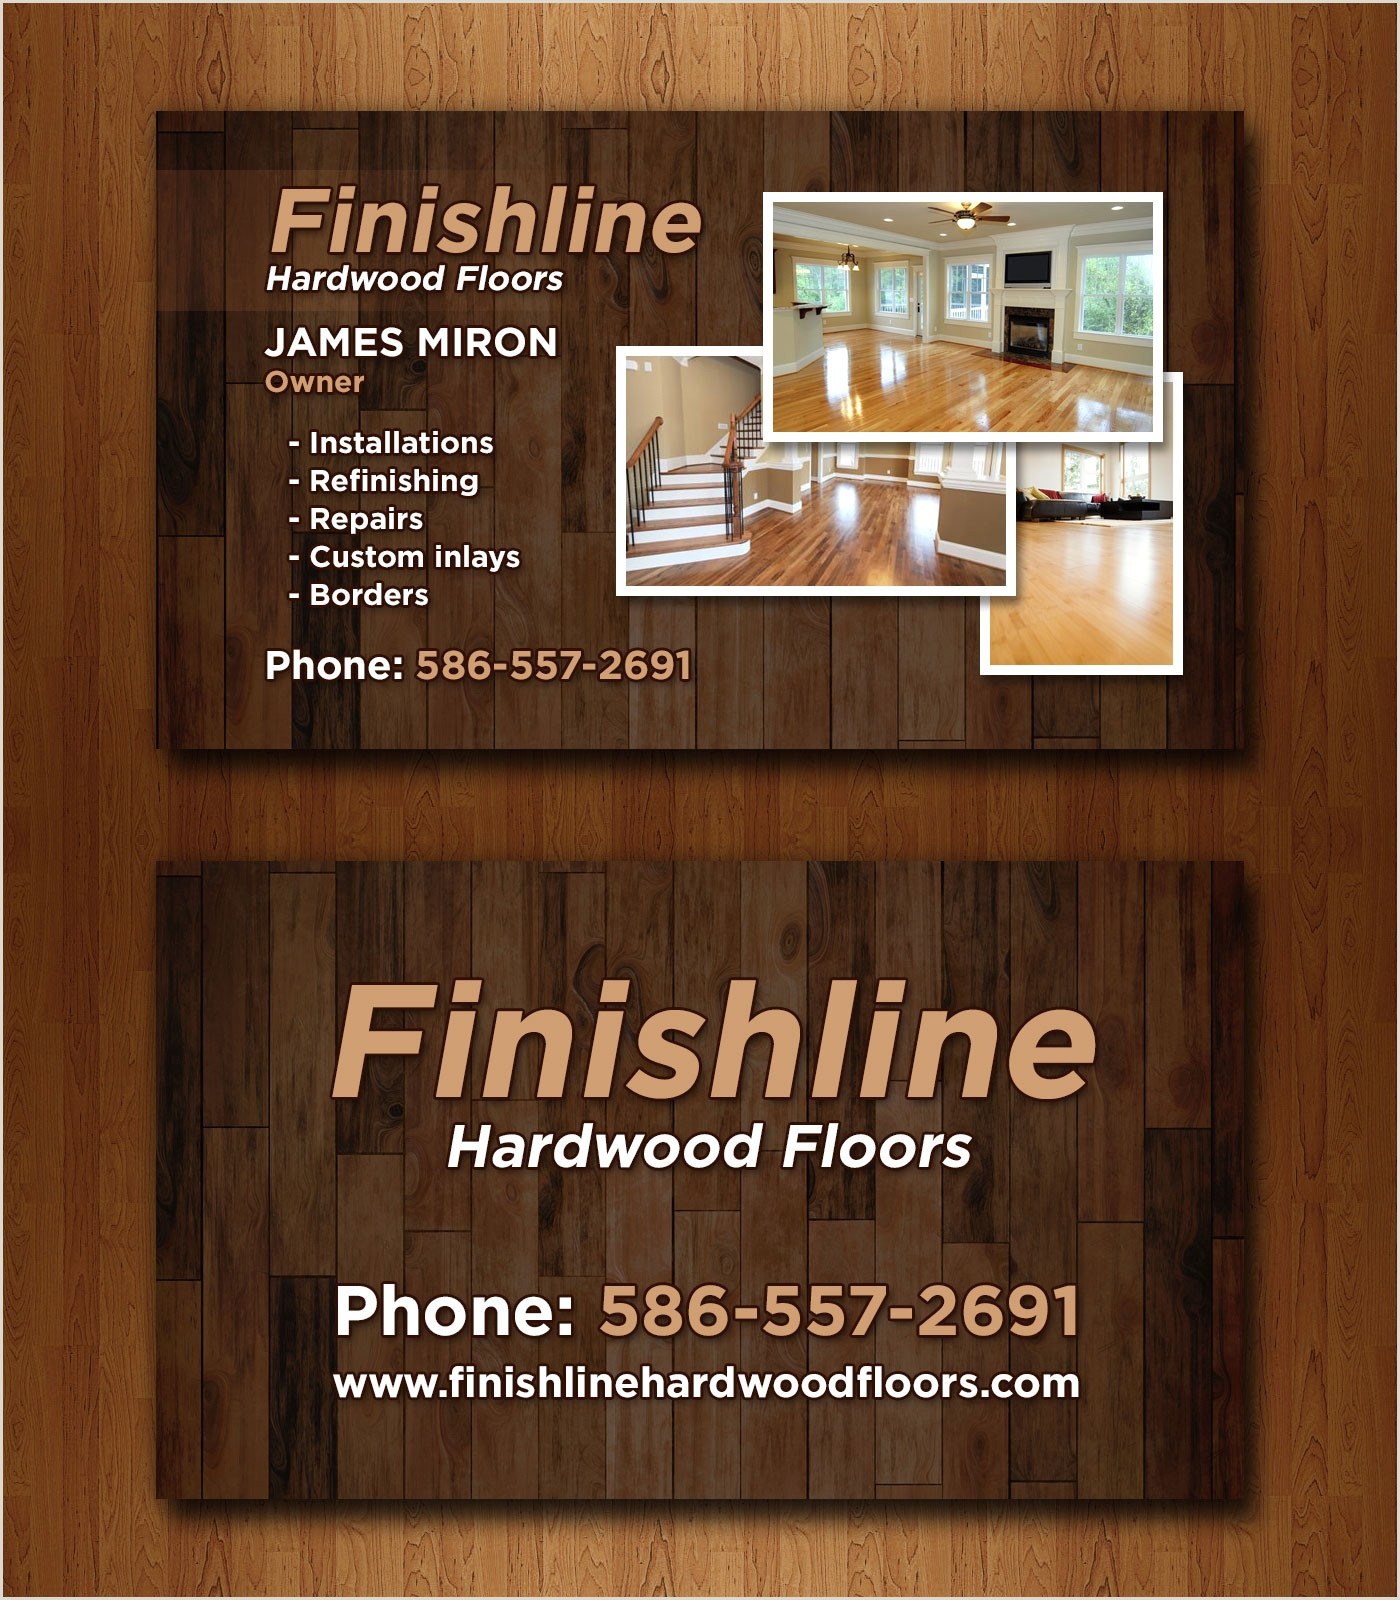 Best Business Cards For Contractors 14 Popular Hardwood Flooring Business Card Template